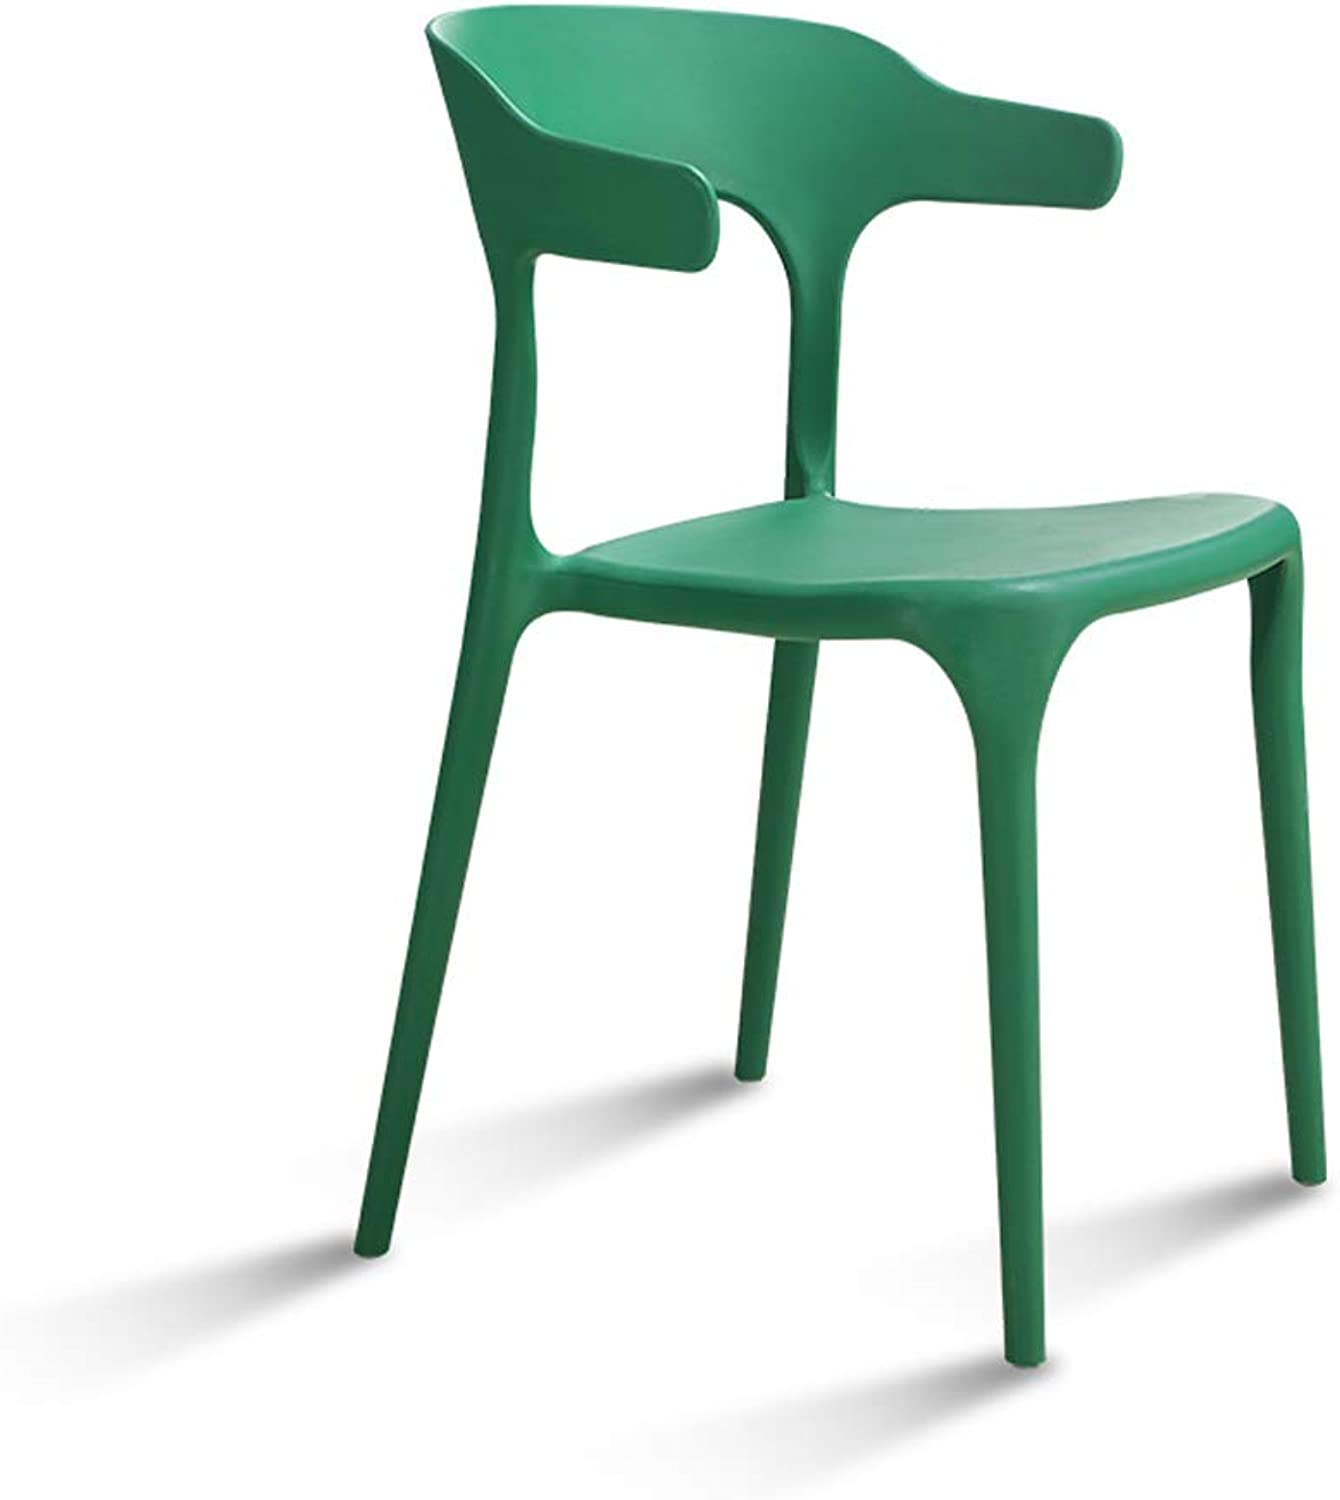 QIQI-DENG Plastic Dining Chair Living Room Home Bench, Simple Bar Stool Restaurant Table and Stool -L5148H46-77CM (color   Green)